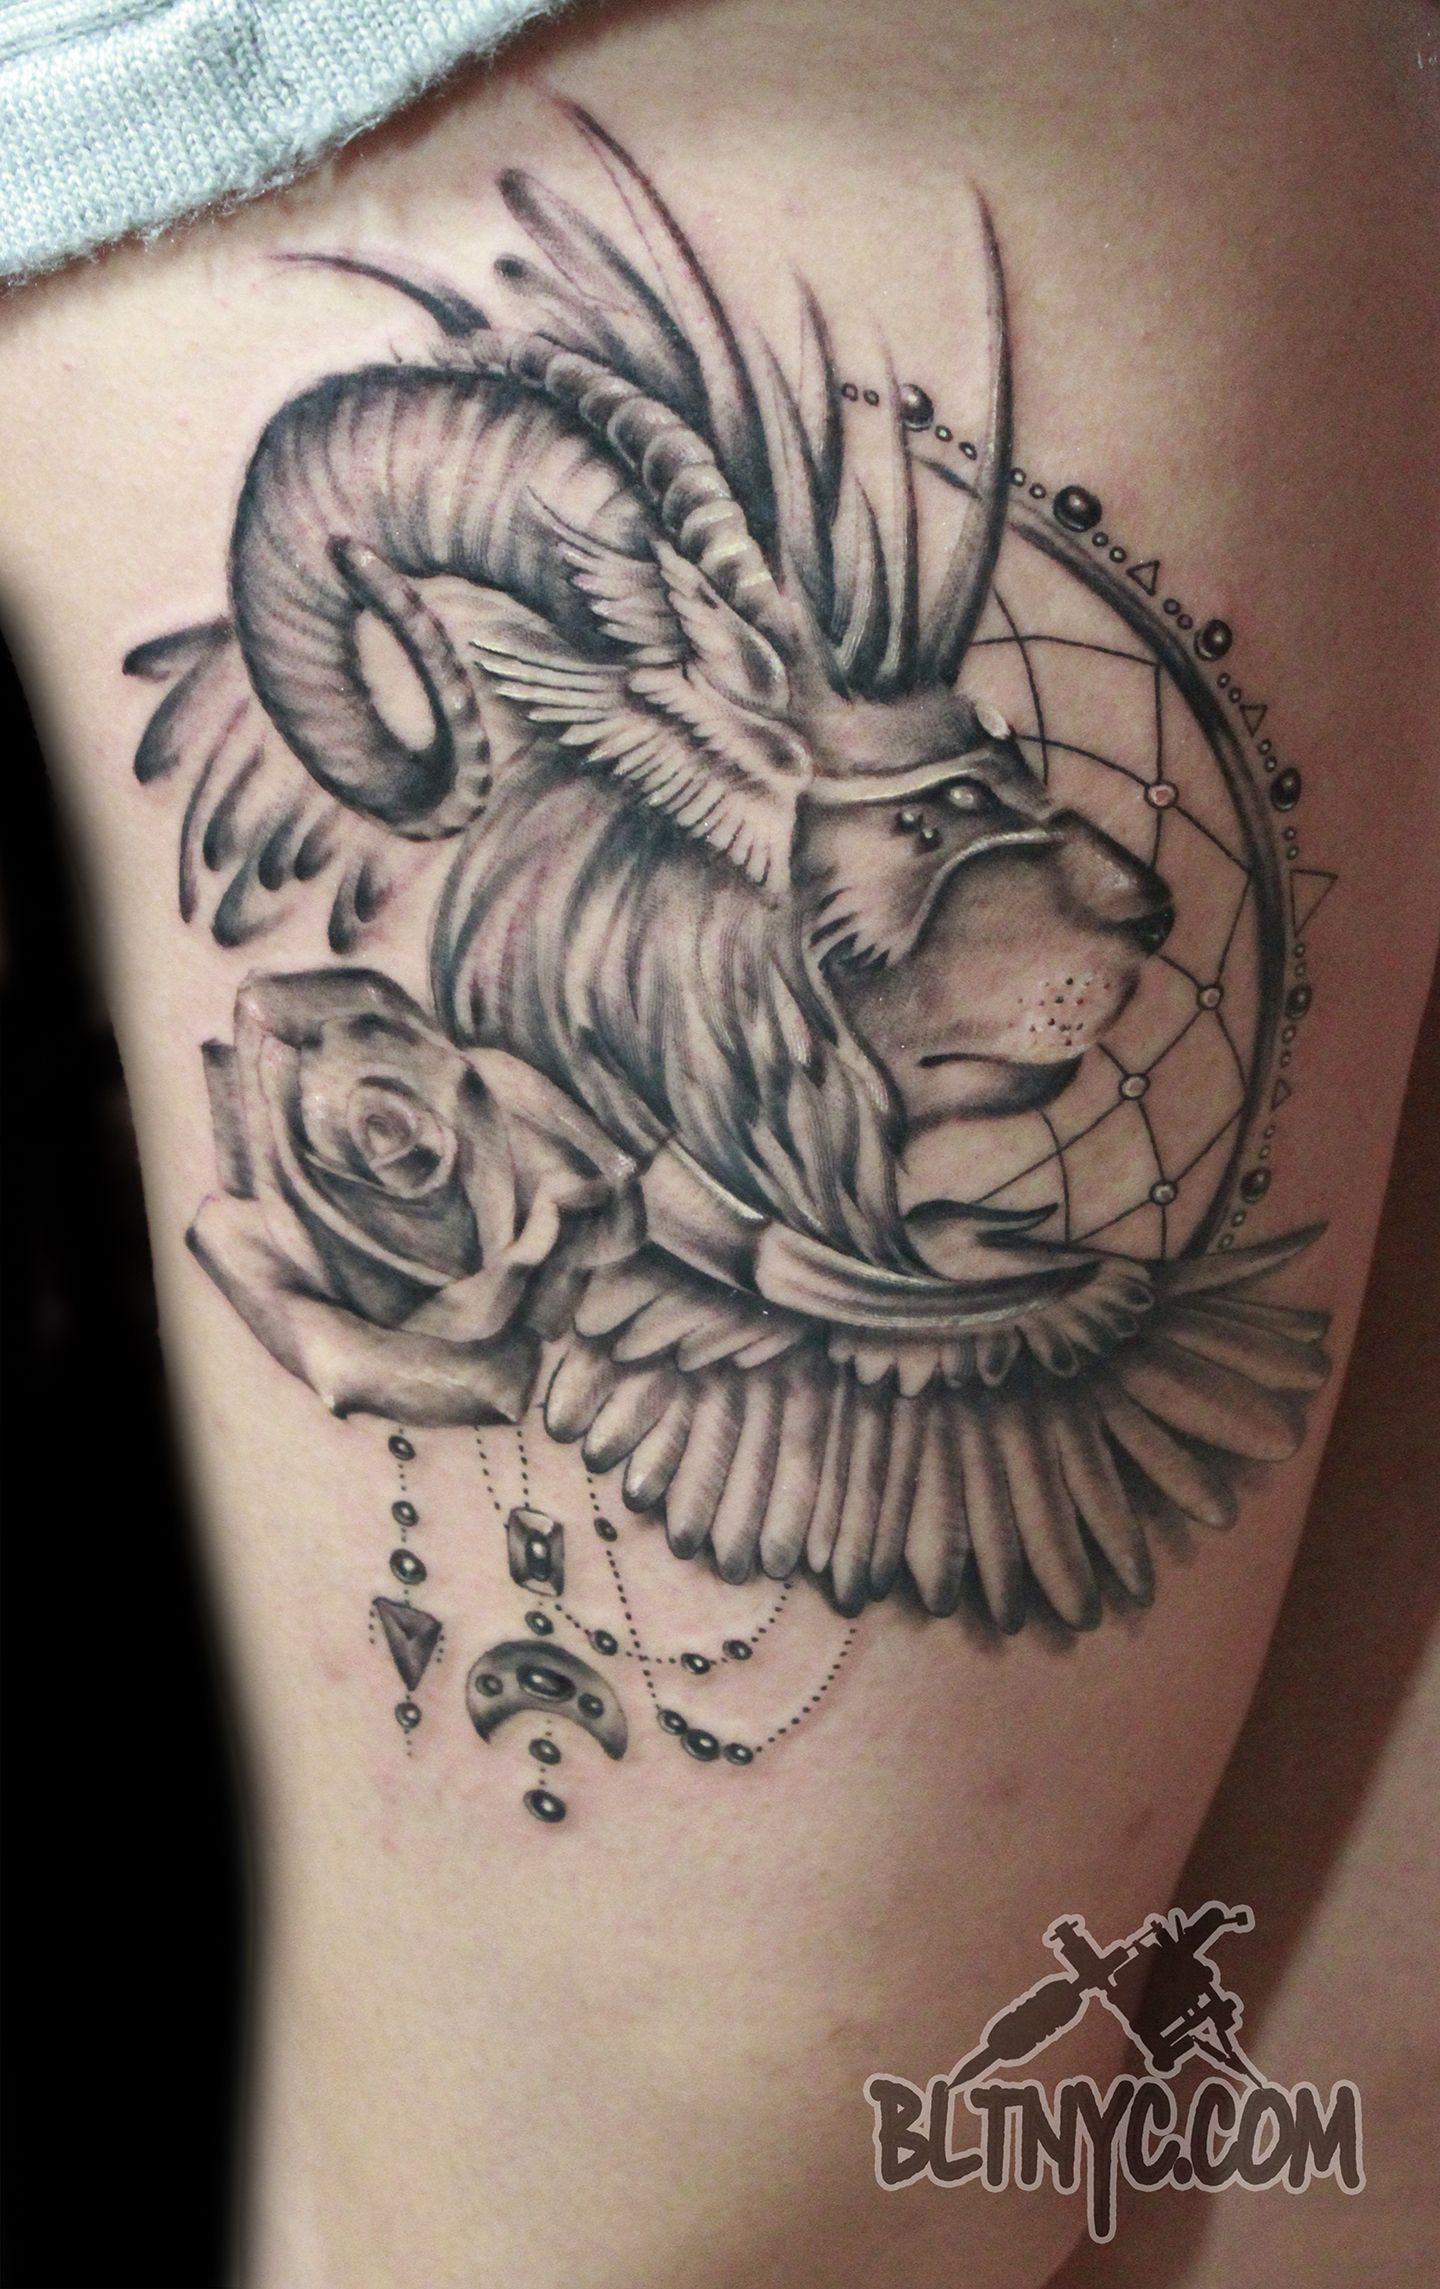 Where To Buy Dream Catchers In Nyc Lion Ram with Roses Dream Catcher Tattoo by Carlos at Body 24